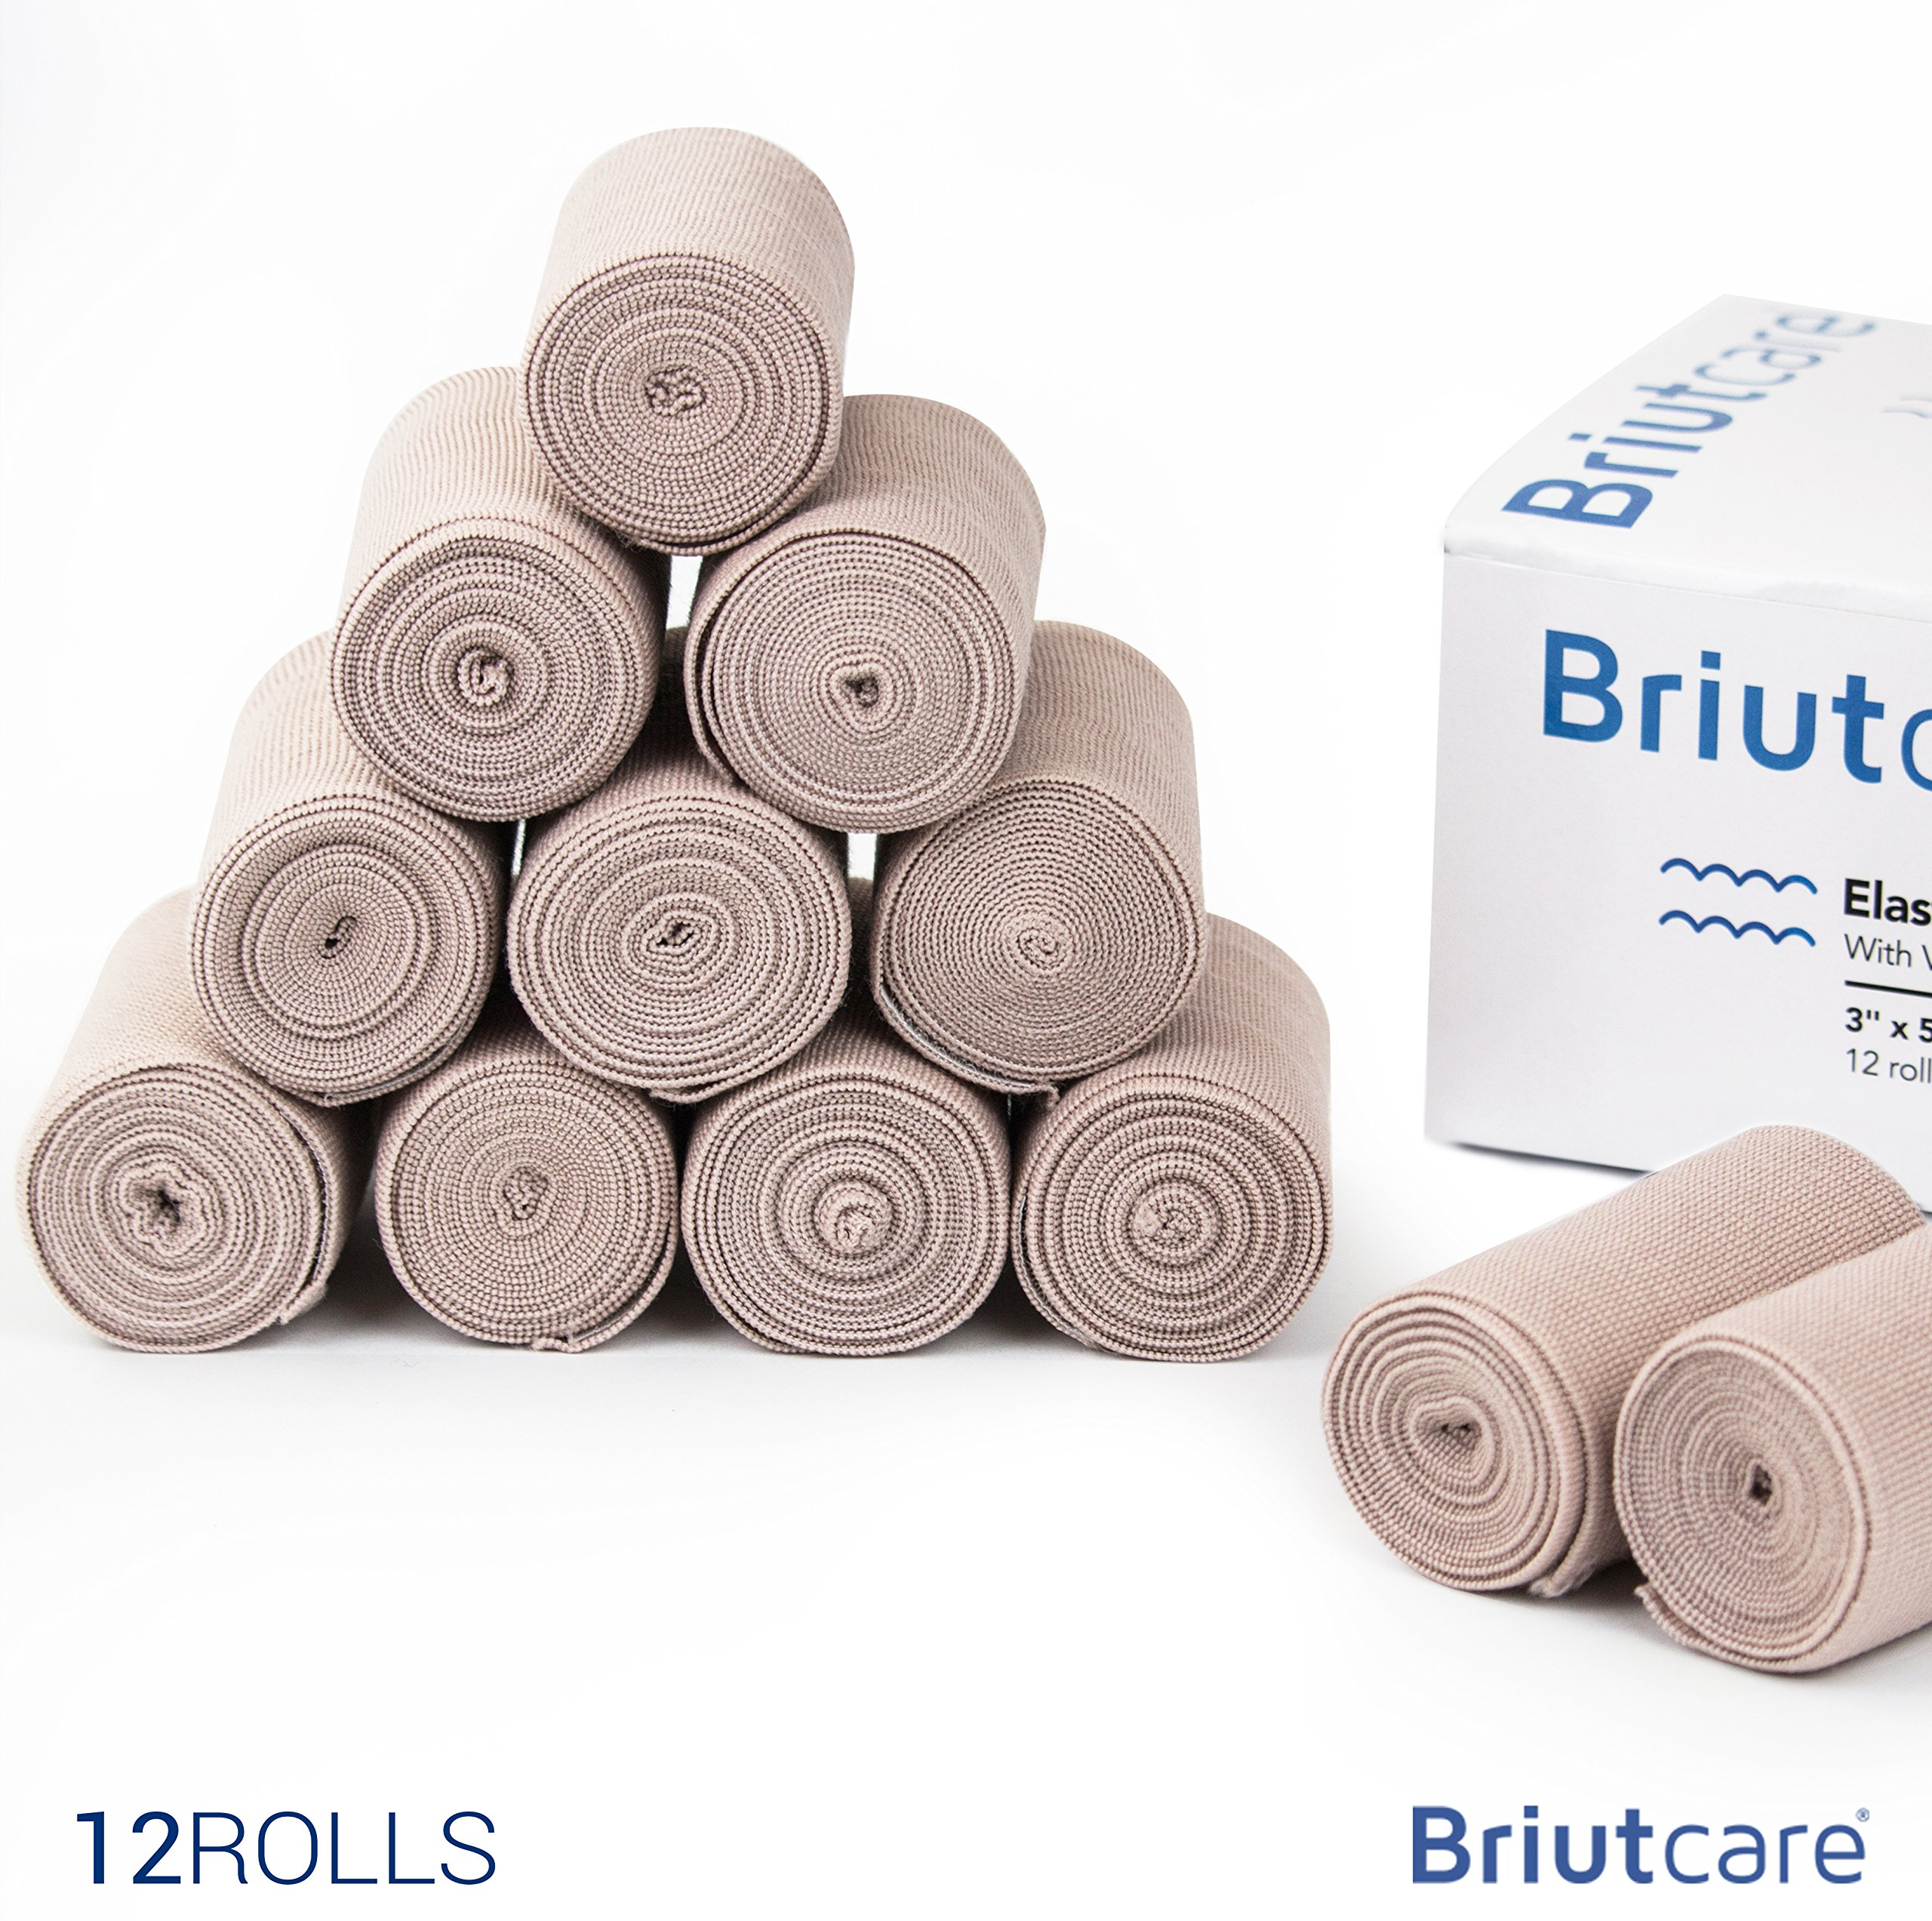 Elastic Bandage 3''x5 Yds (12 Pcs) by Briutcare | FDA Approved Compression Bandage Wrap With One Side Hook and Loop Closure | First Aid Supply for Swelling & Soreness of Wrist, Ankle & other Joints